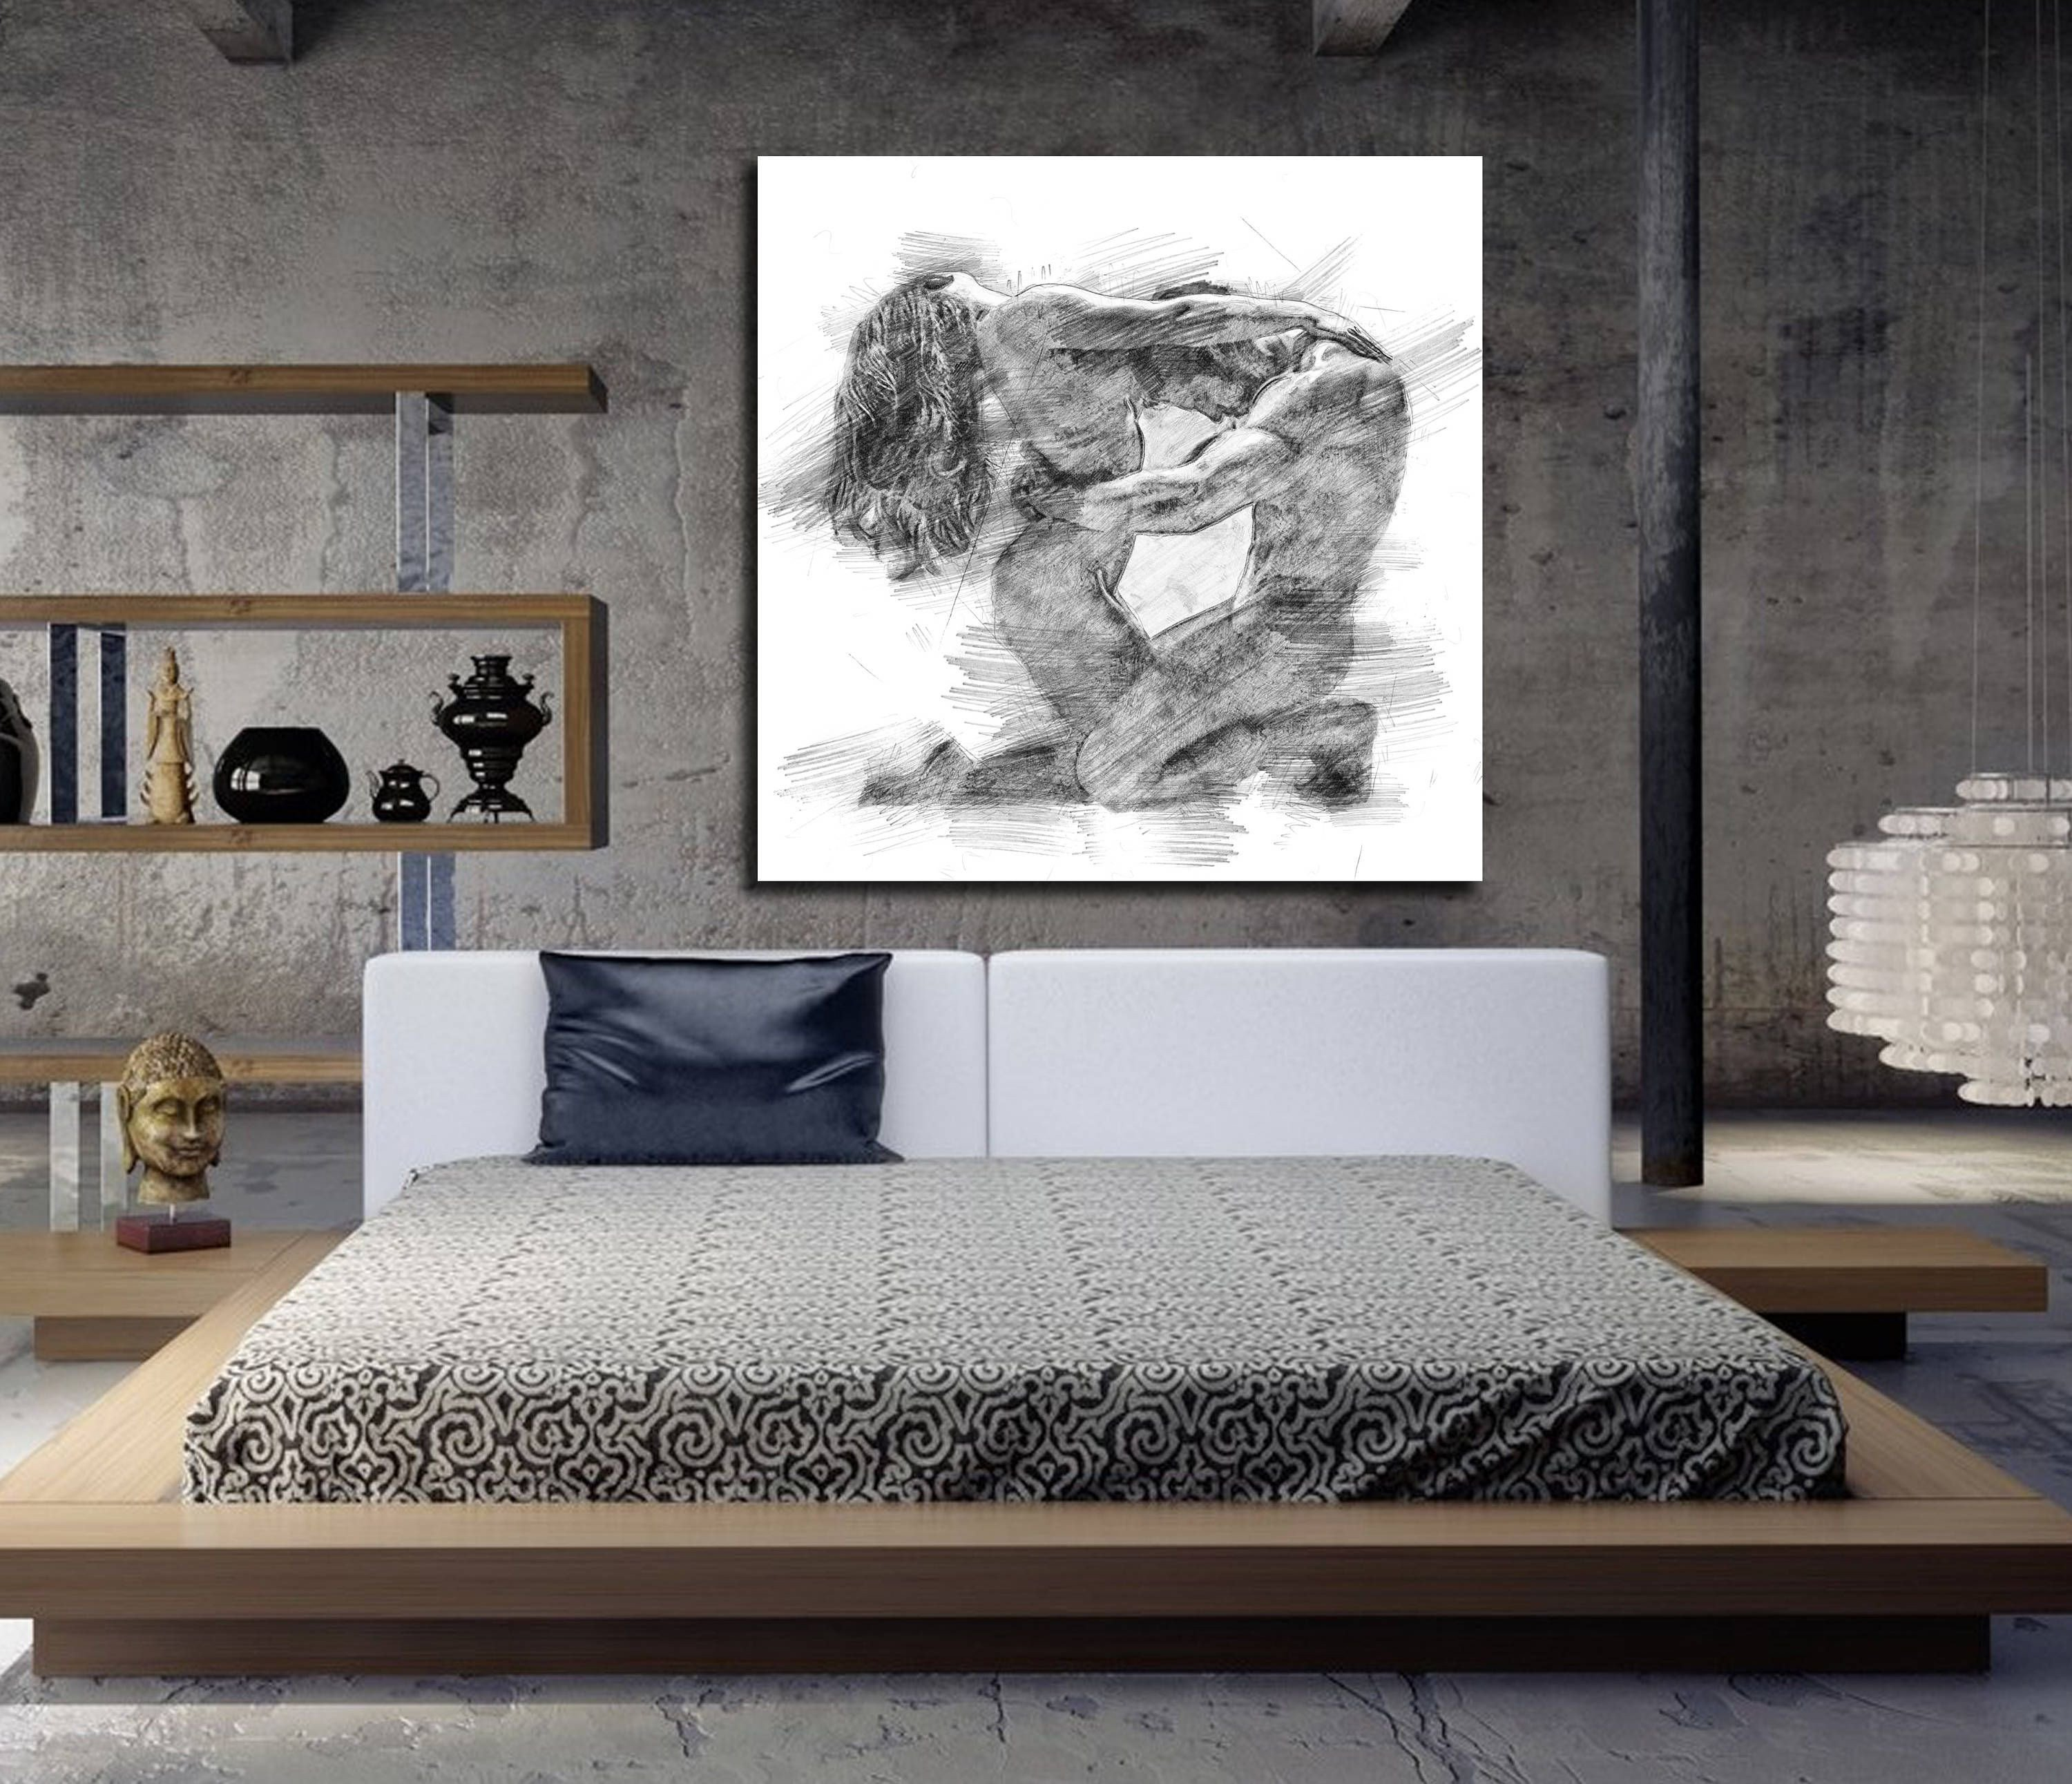 Wall Decor for Master Bedrooms Best Of Canvas Art His & Hers Bedroom Wall Art Abstract Art Print Pencil Sketch Erotic Master Bedroom